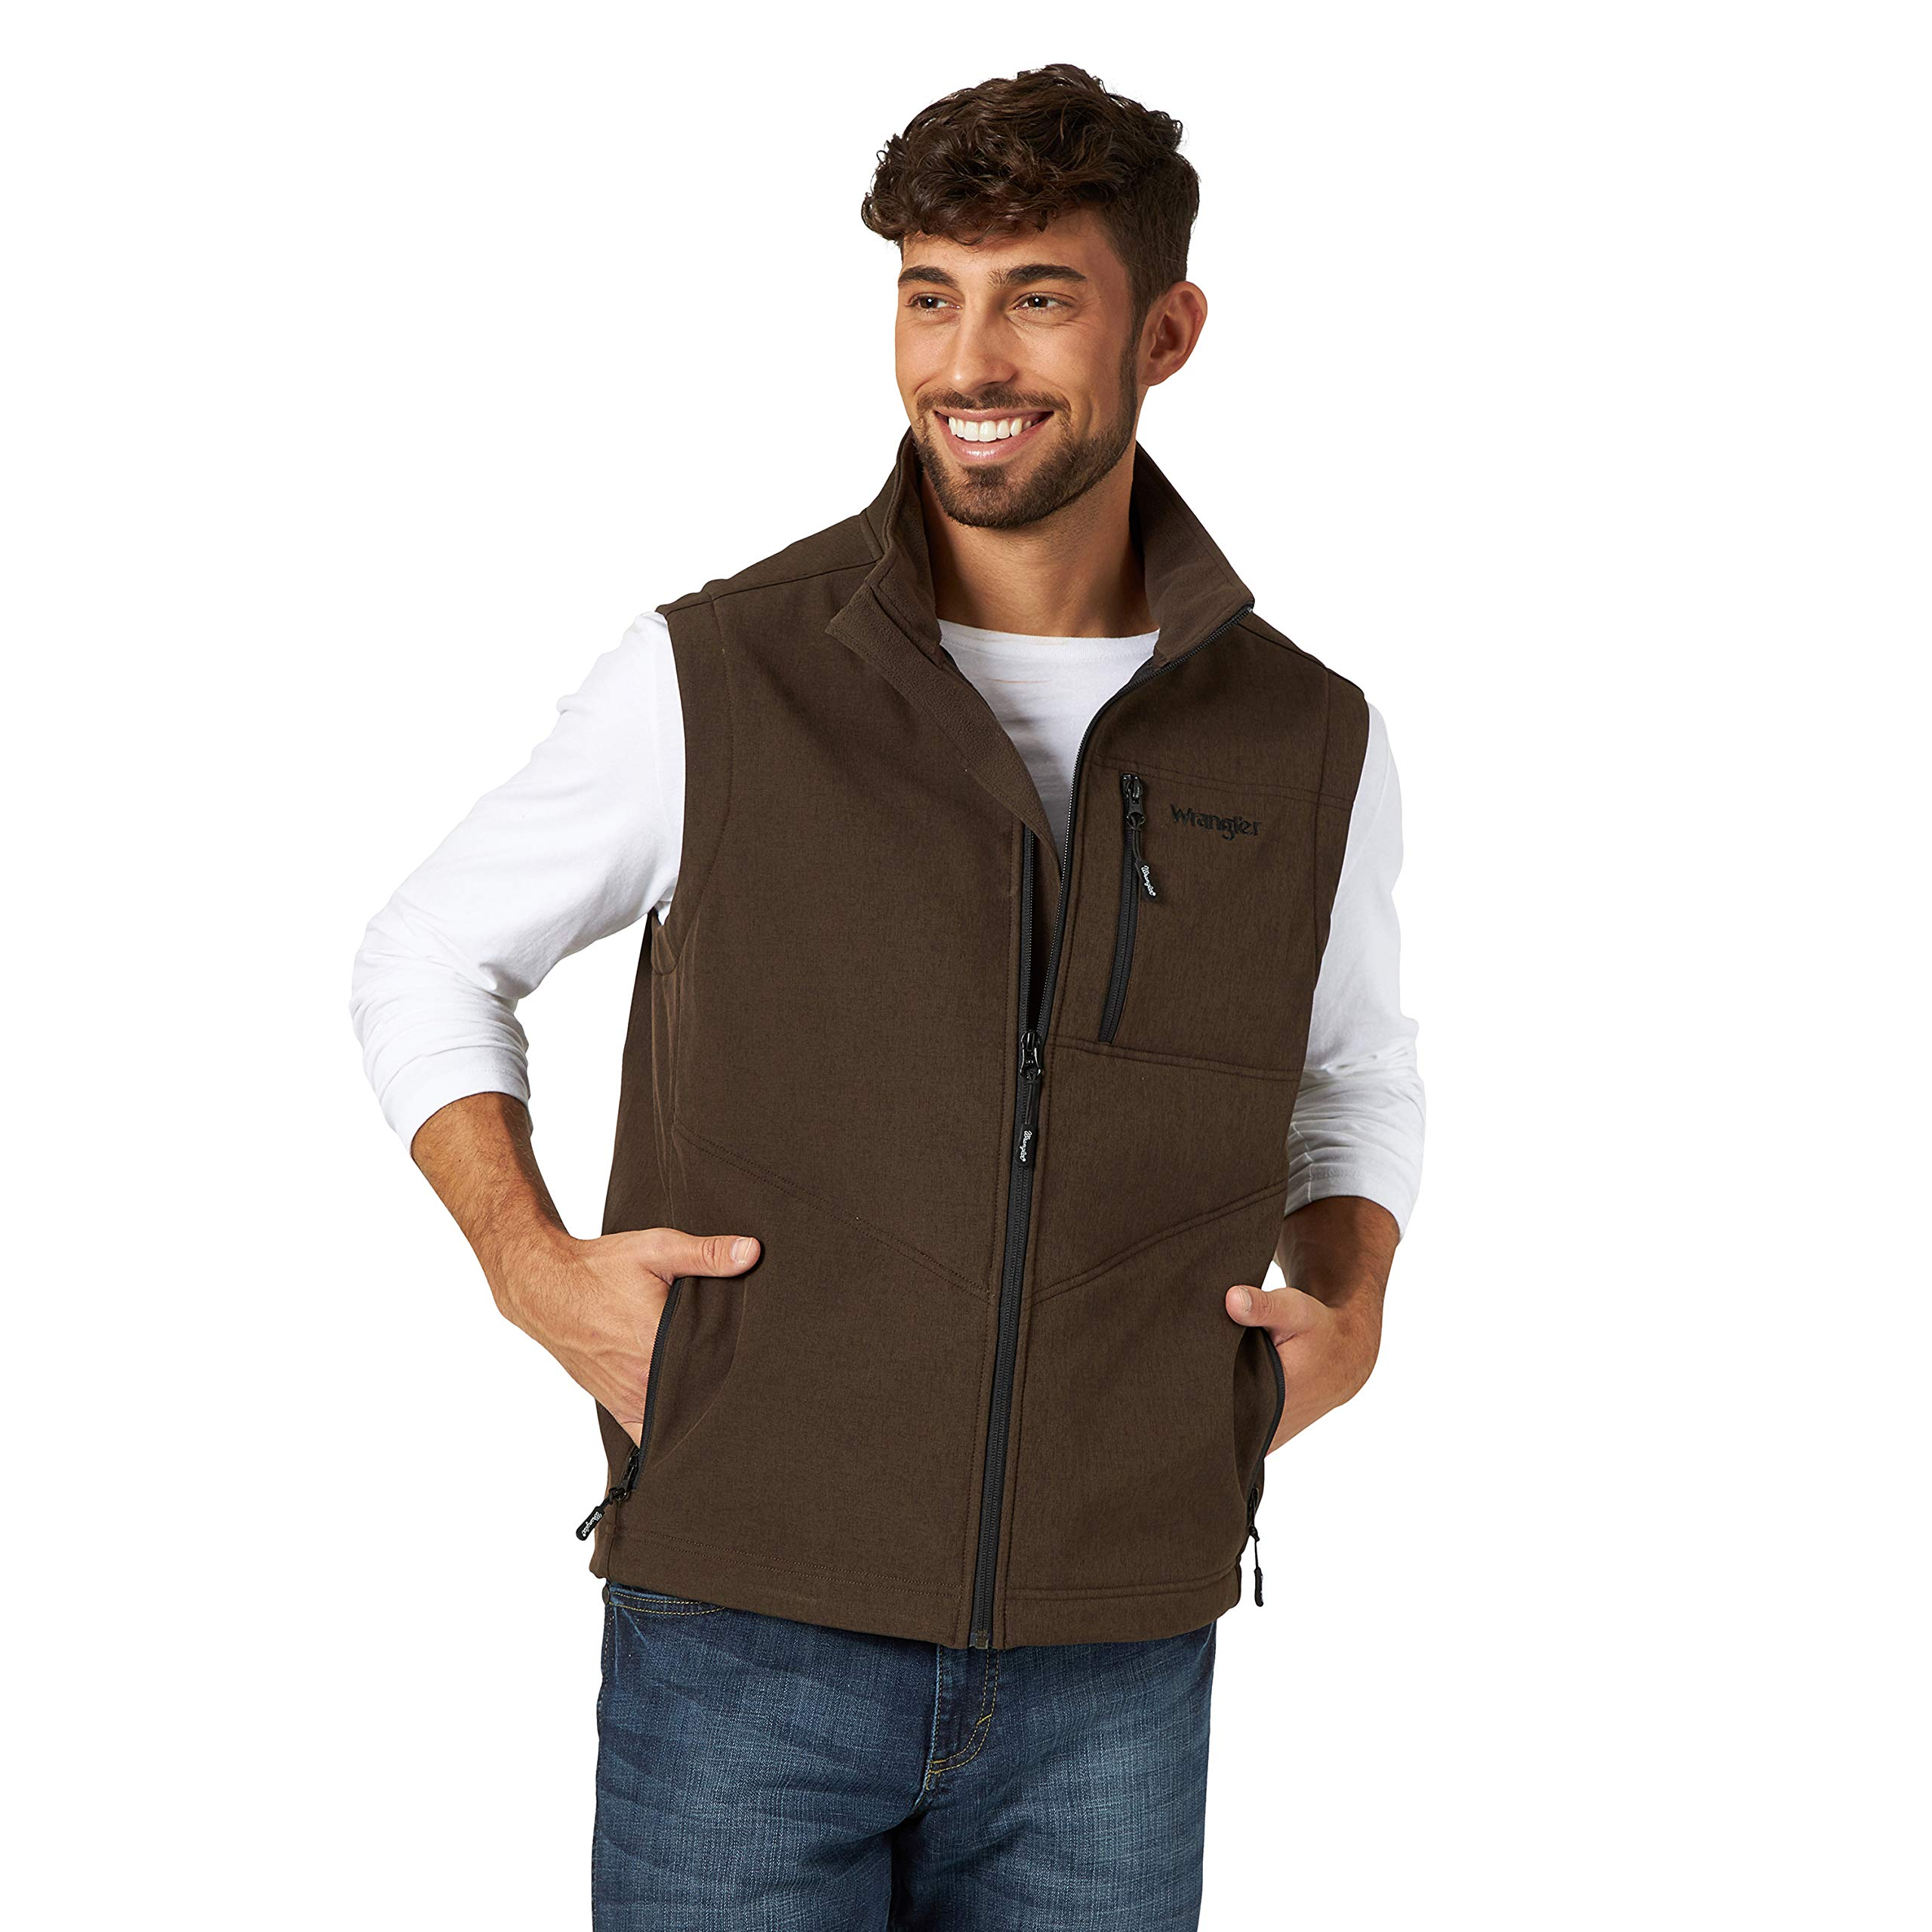 Wrangler Men's Concealed Carry Stretch Trail Vest, Brown Heather, 3XT by Wrangler